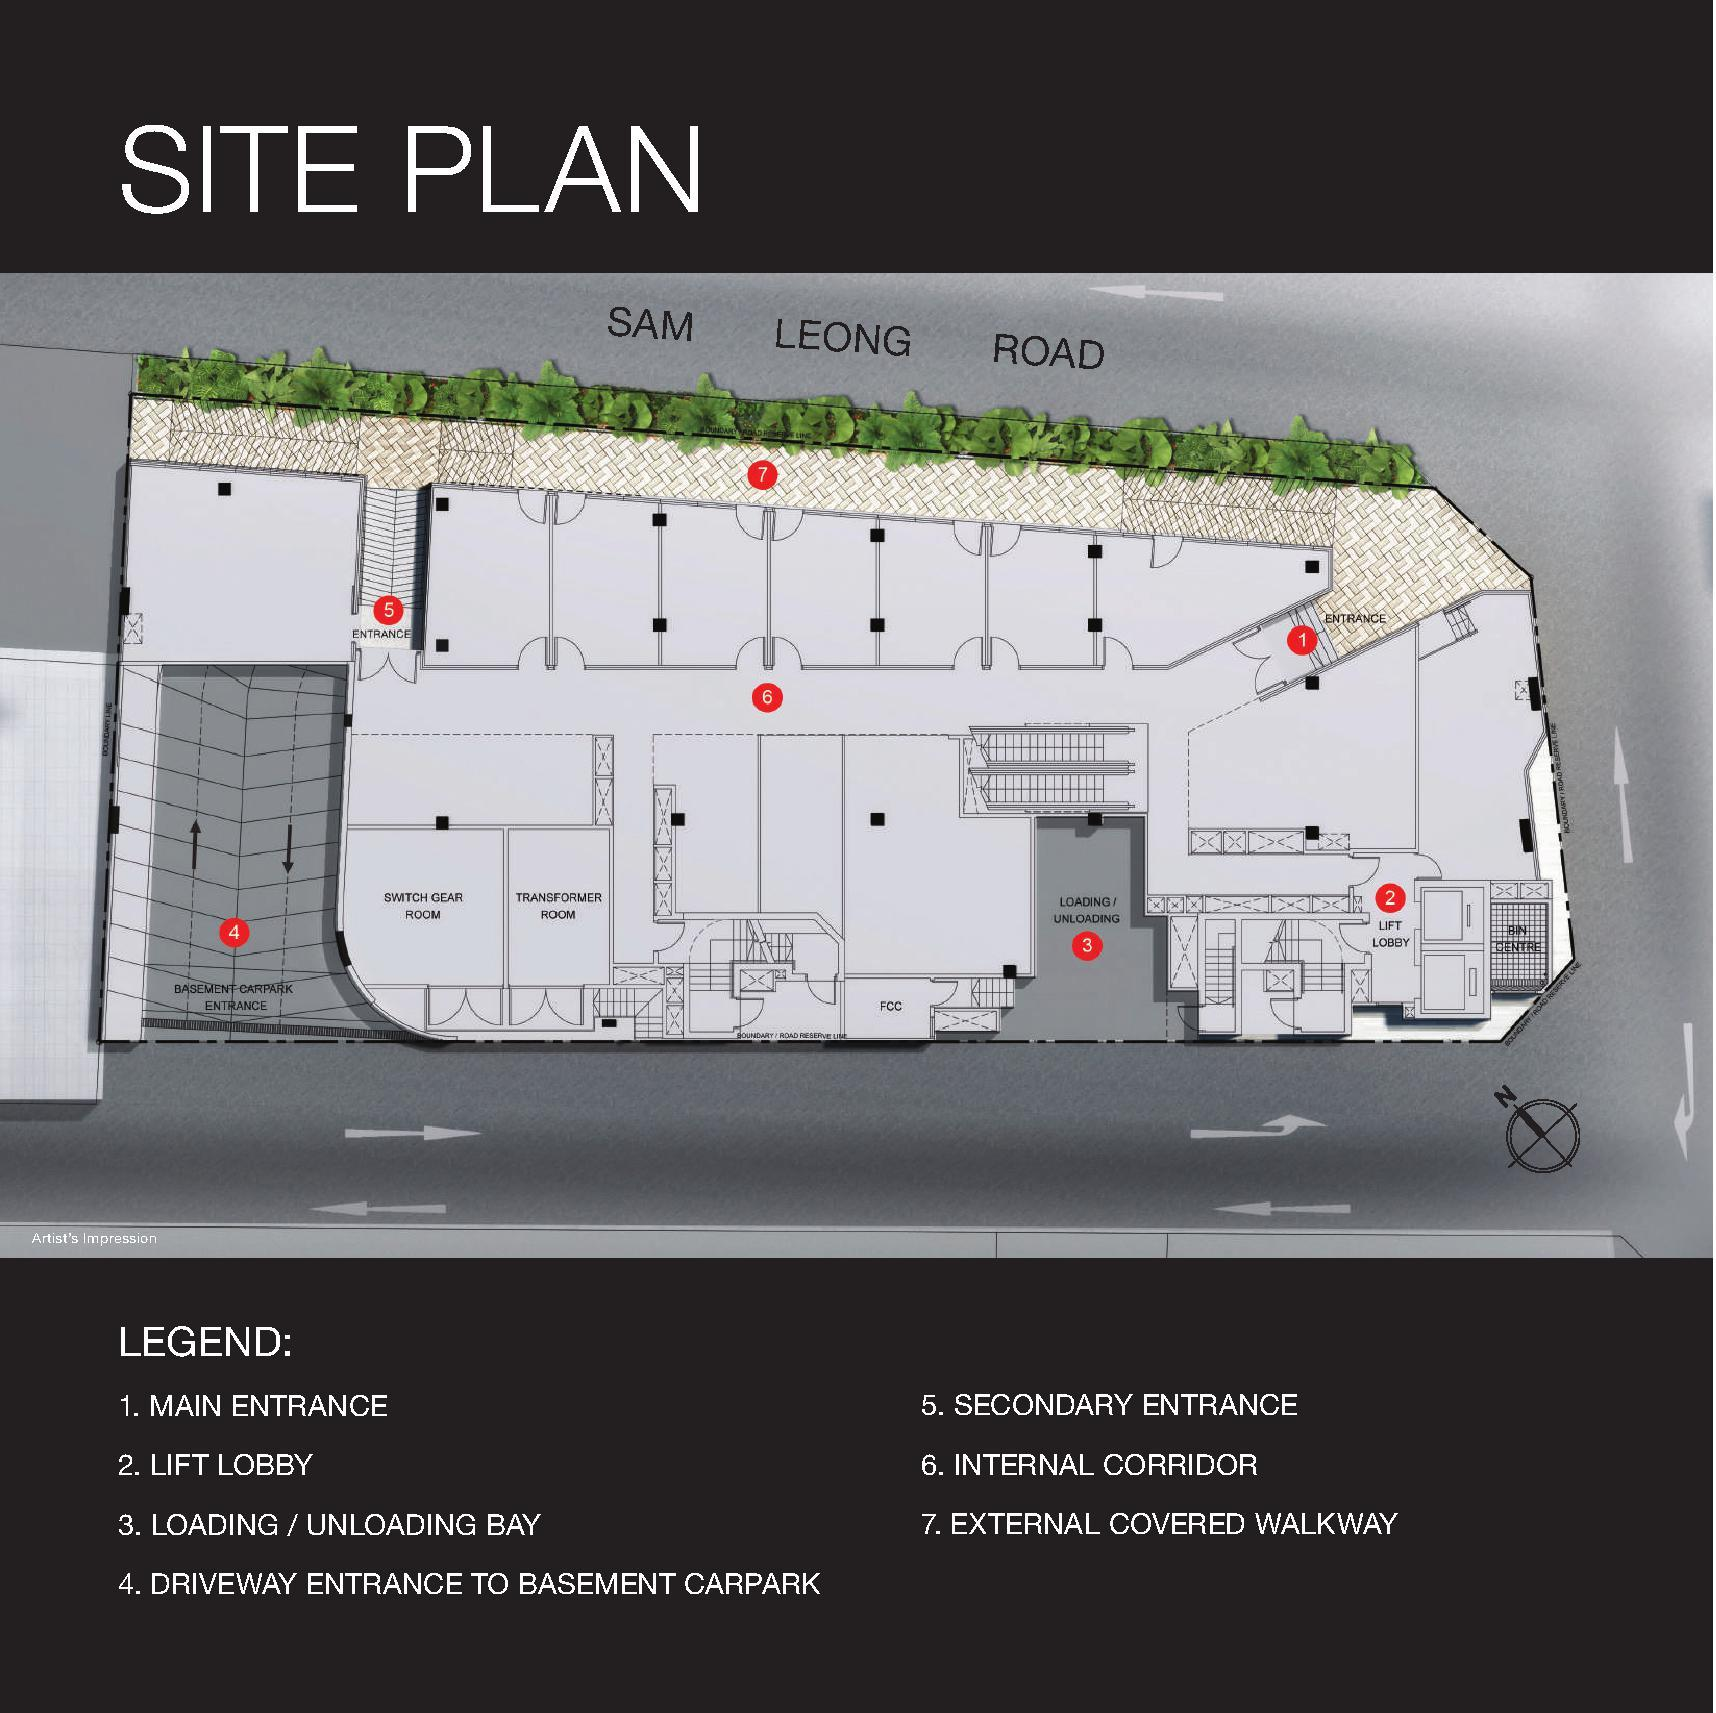 Trio-sam-leong-SITE-PLAN